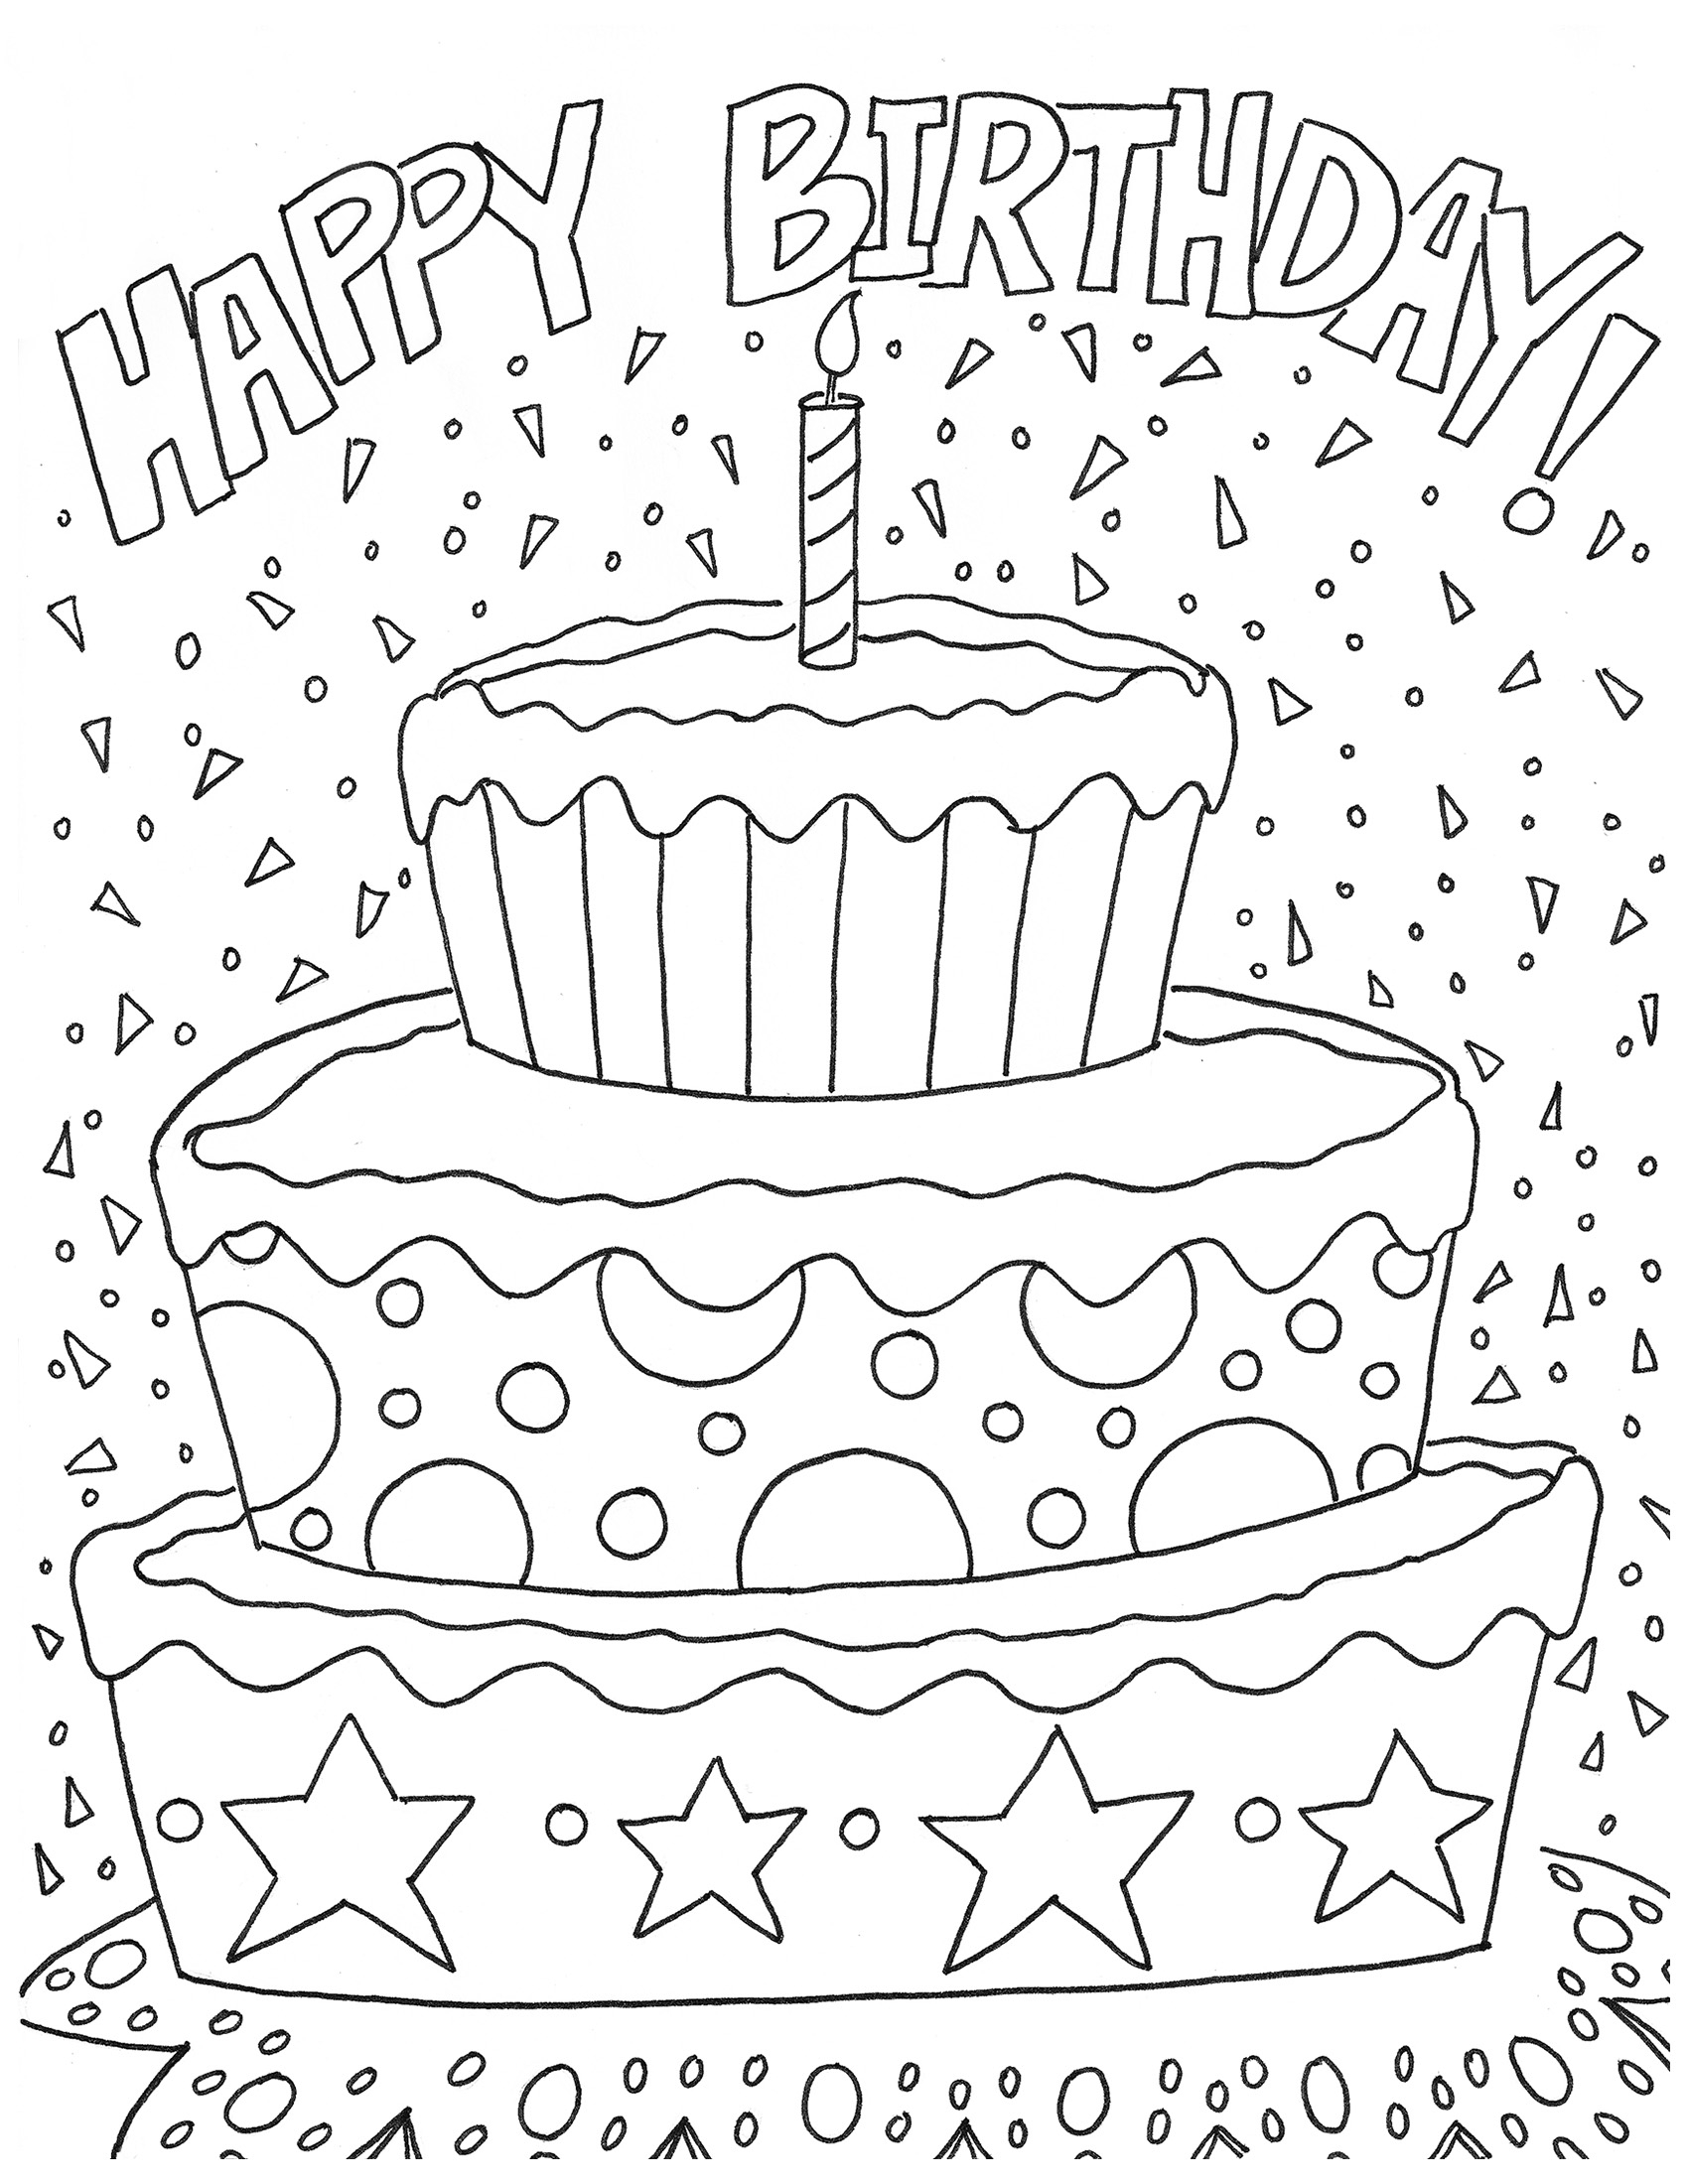 happy birthday coloring pages - artzycreations